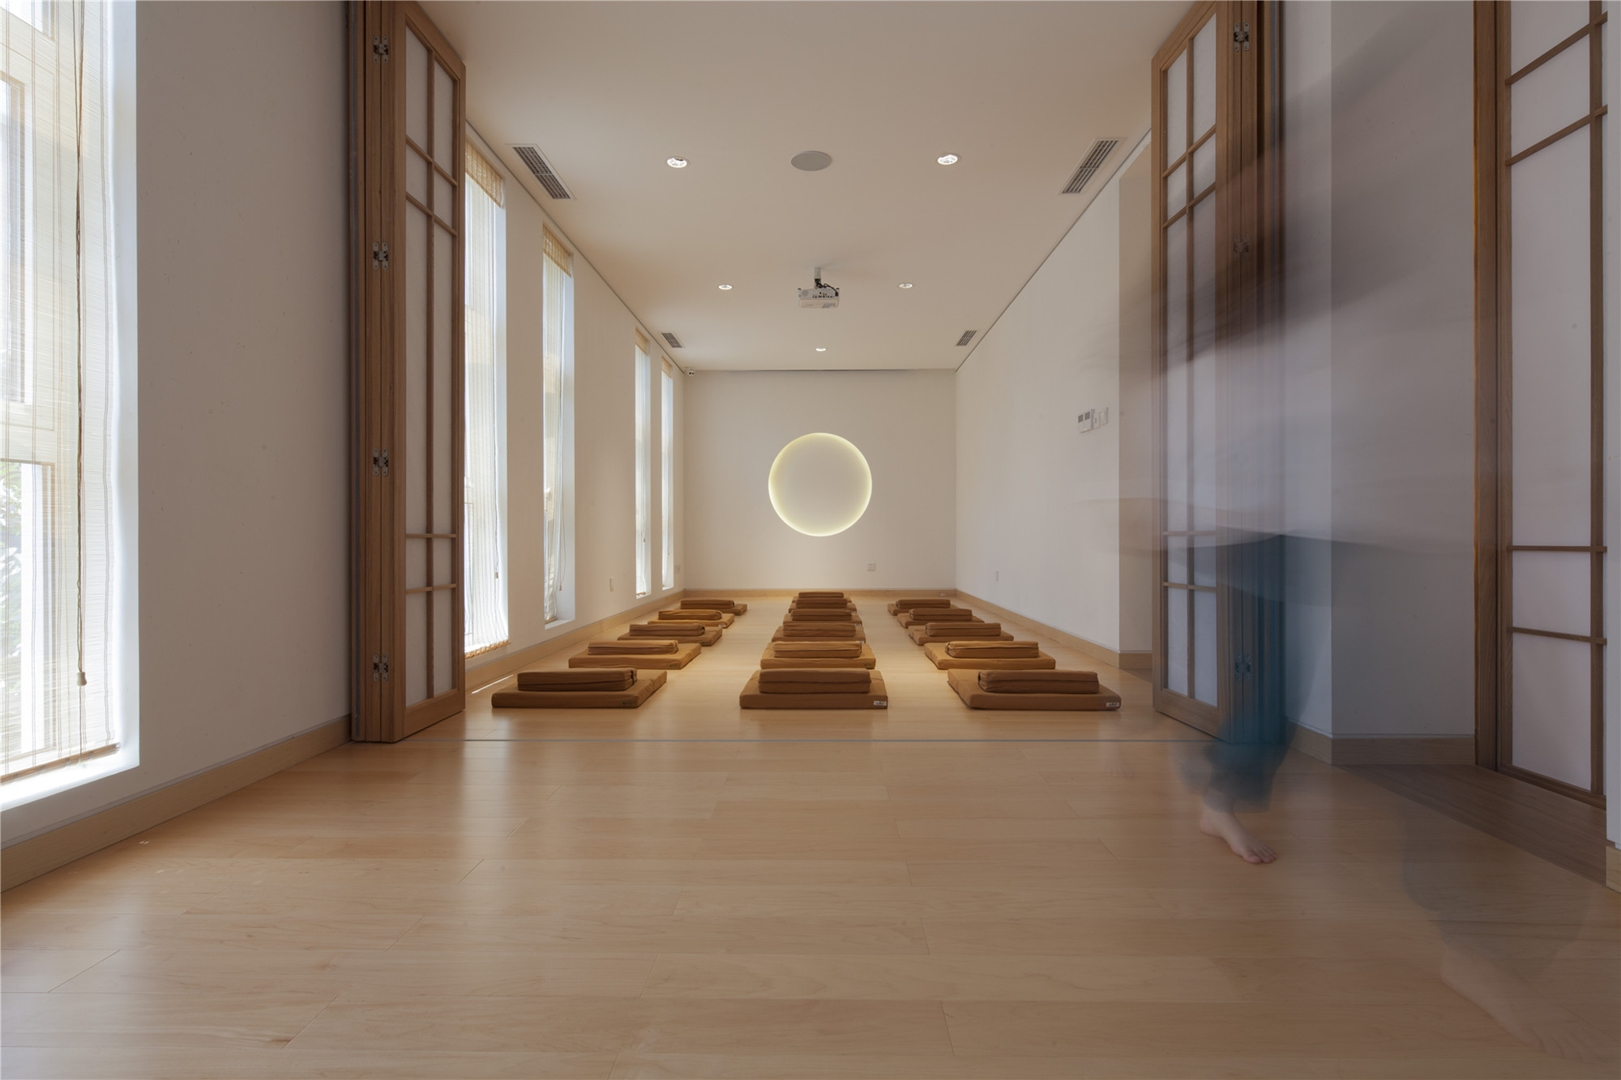 18- meditation room, photography by Zou Bin (Copy)